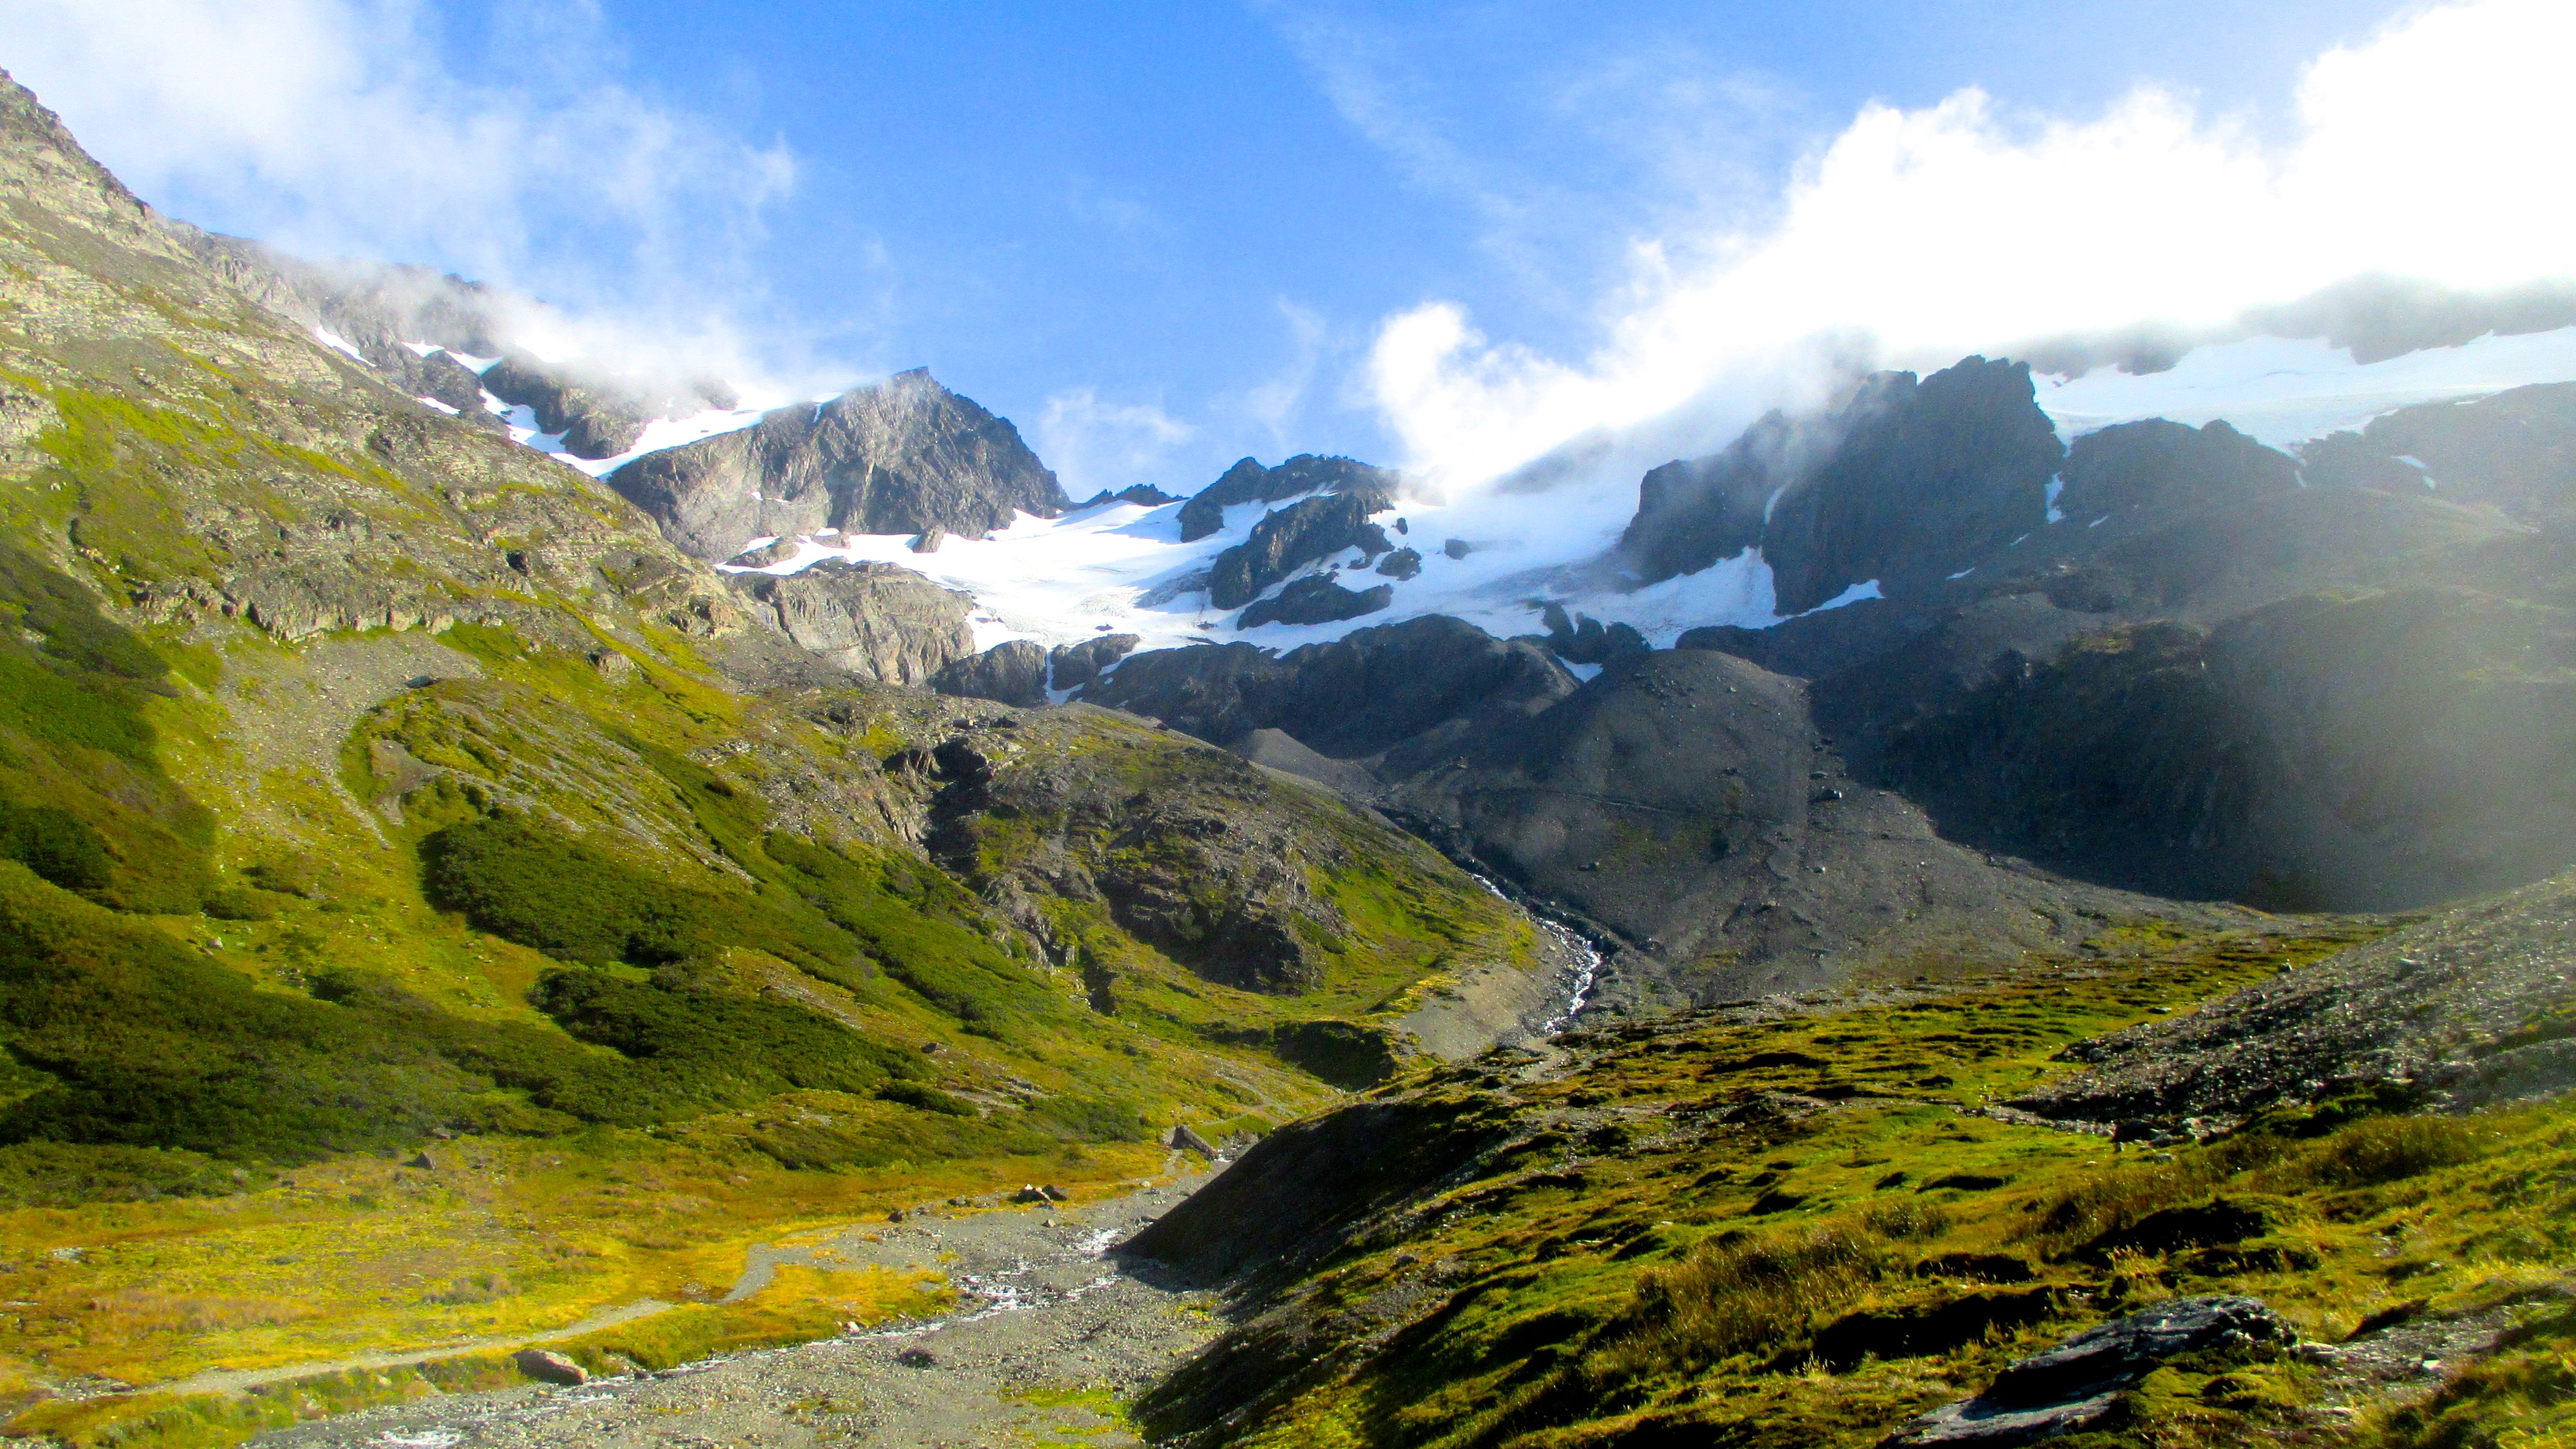 Martial Glacier: A Great Hike for Beginners